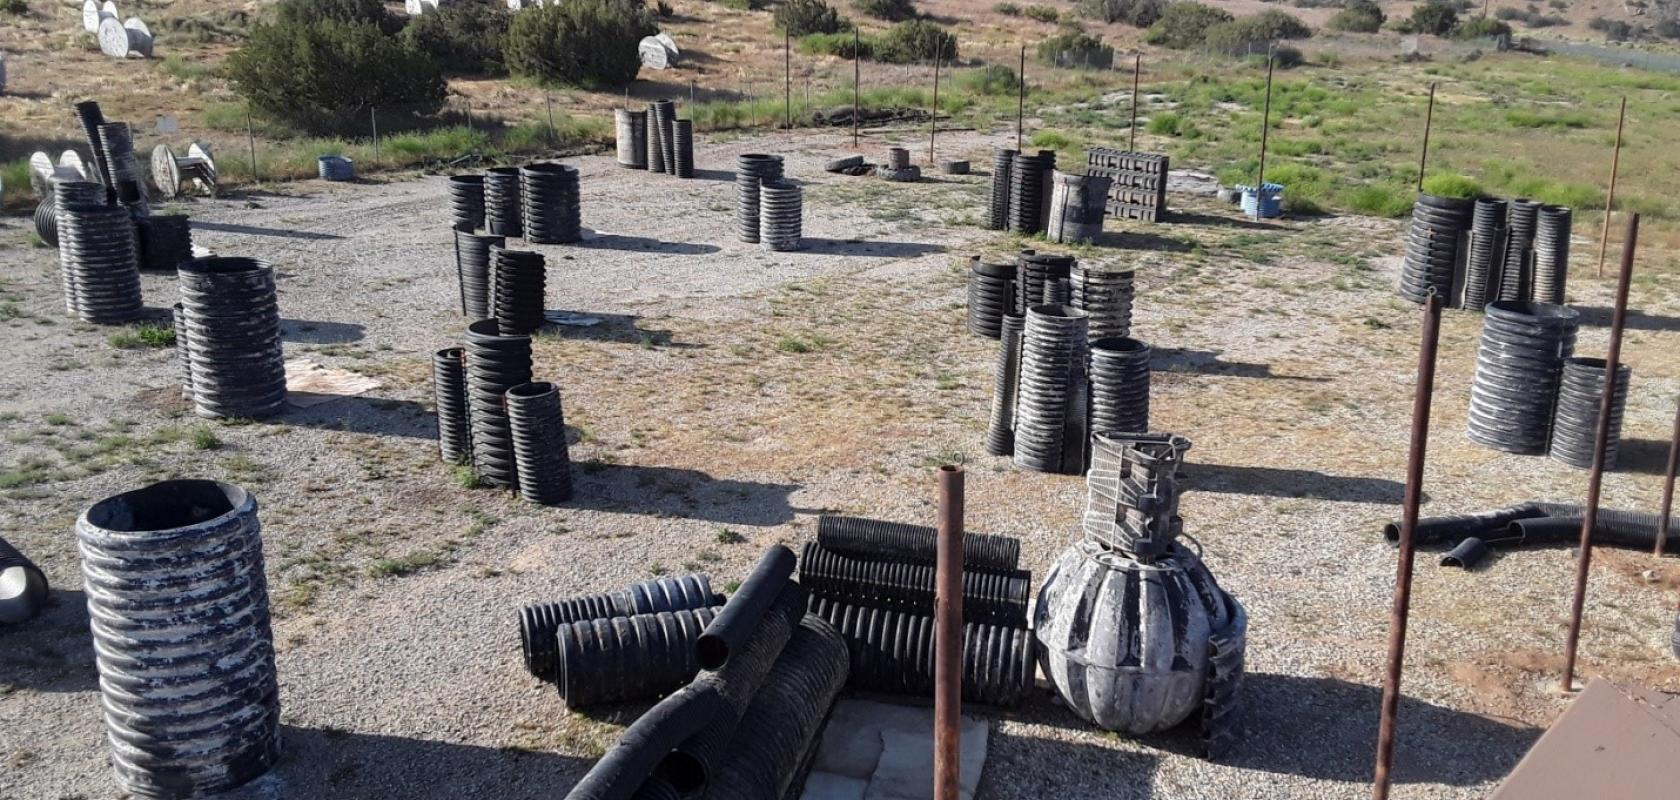 Why Paintball USA is the Best Full Service Paintball Park in So Cal